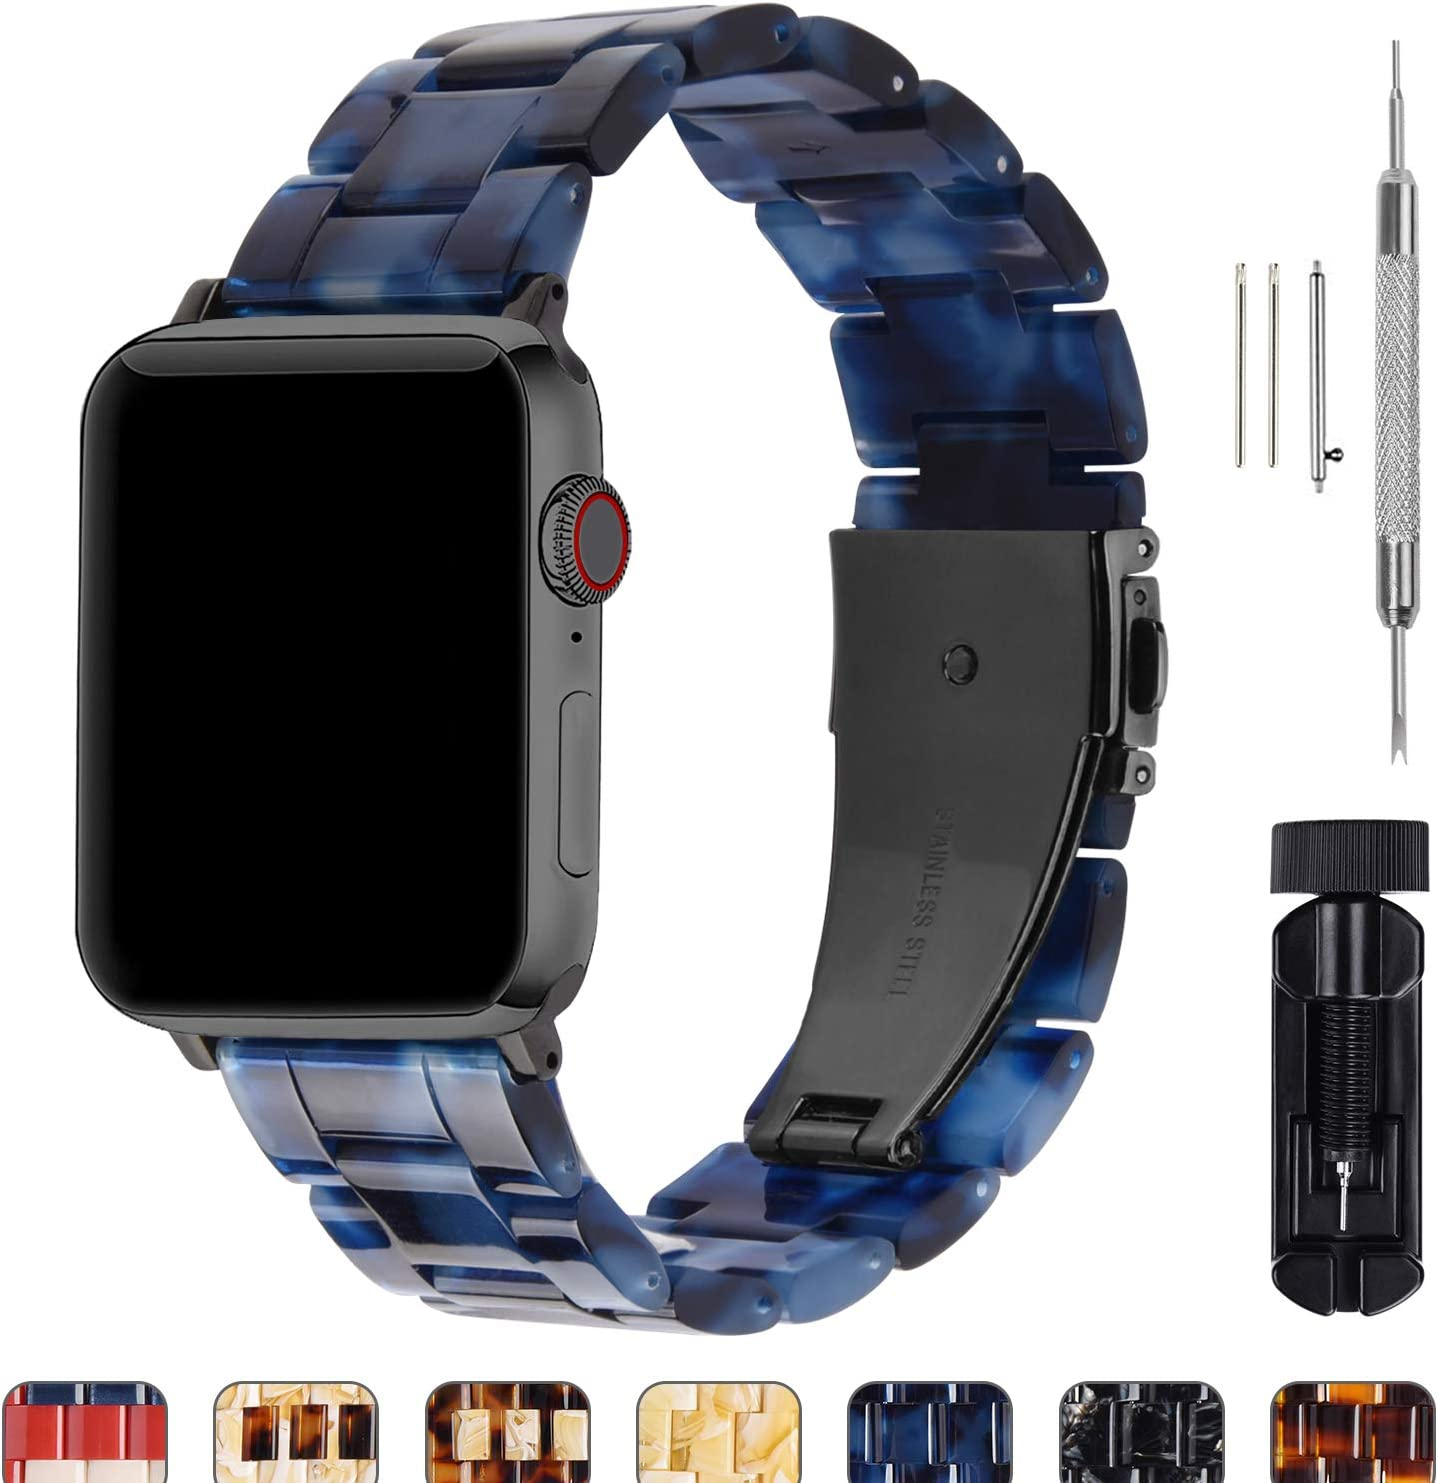 Fullmosa Compatible Apple Watch 44mm/42mm/40mm/38mm, Bright Resin Apple Watch Band for iWatch SE & Series 6/5/4/3/2/1, Hermes, Nike+, Edition, Sport, Abyssal Sea(Smoky Grey Hardware) 44mm